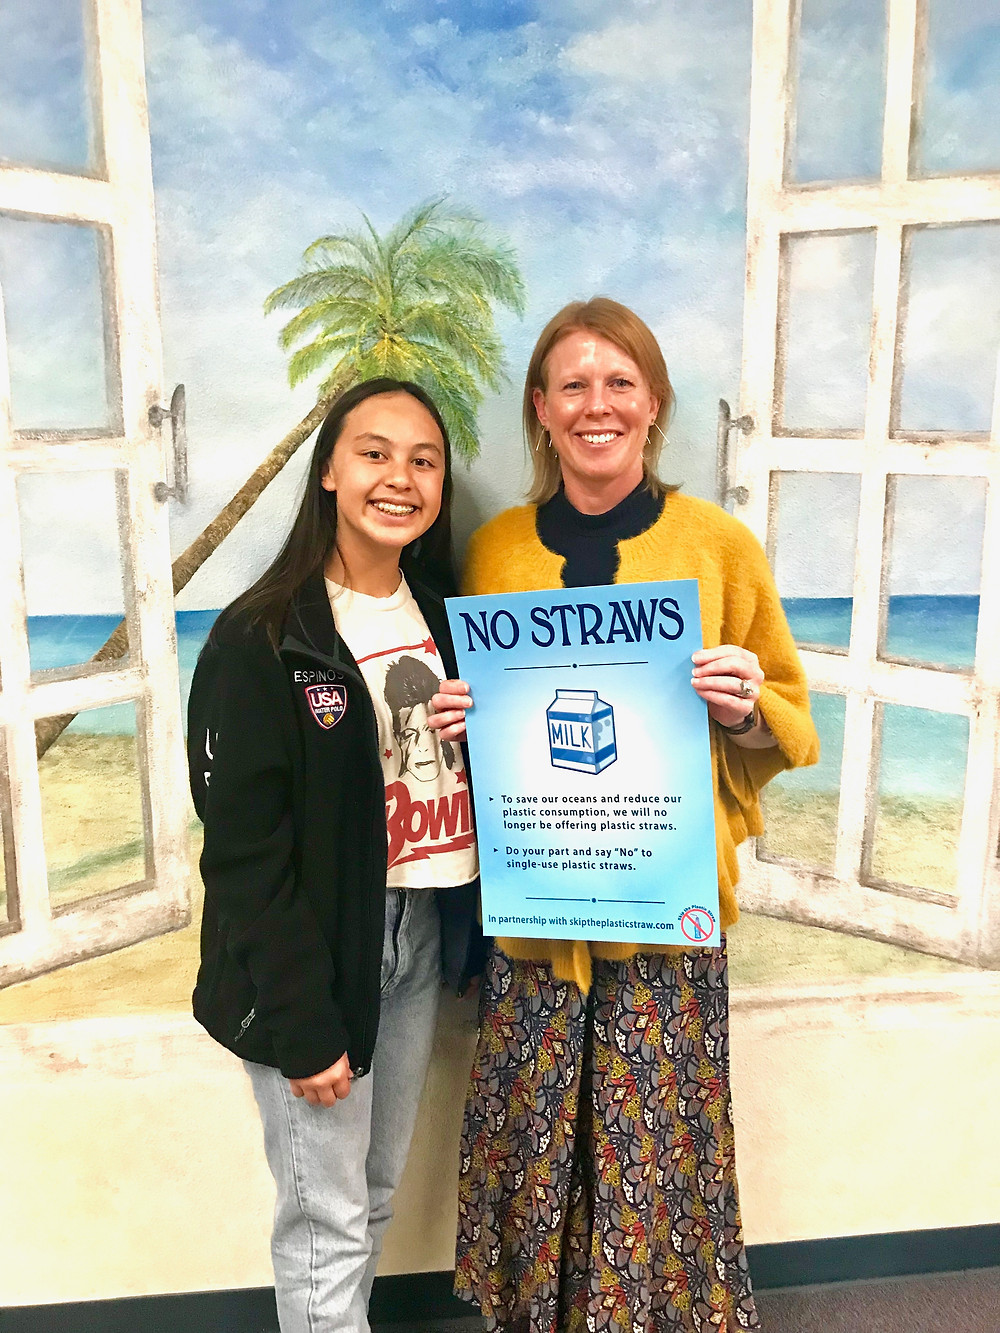 Mrs. Kirstin Hilleman, nutrition and food services director for Capistrano Unified School District, with Skip the Plastic Straw poster.